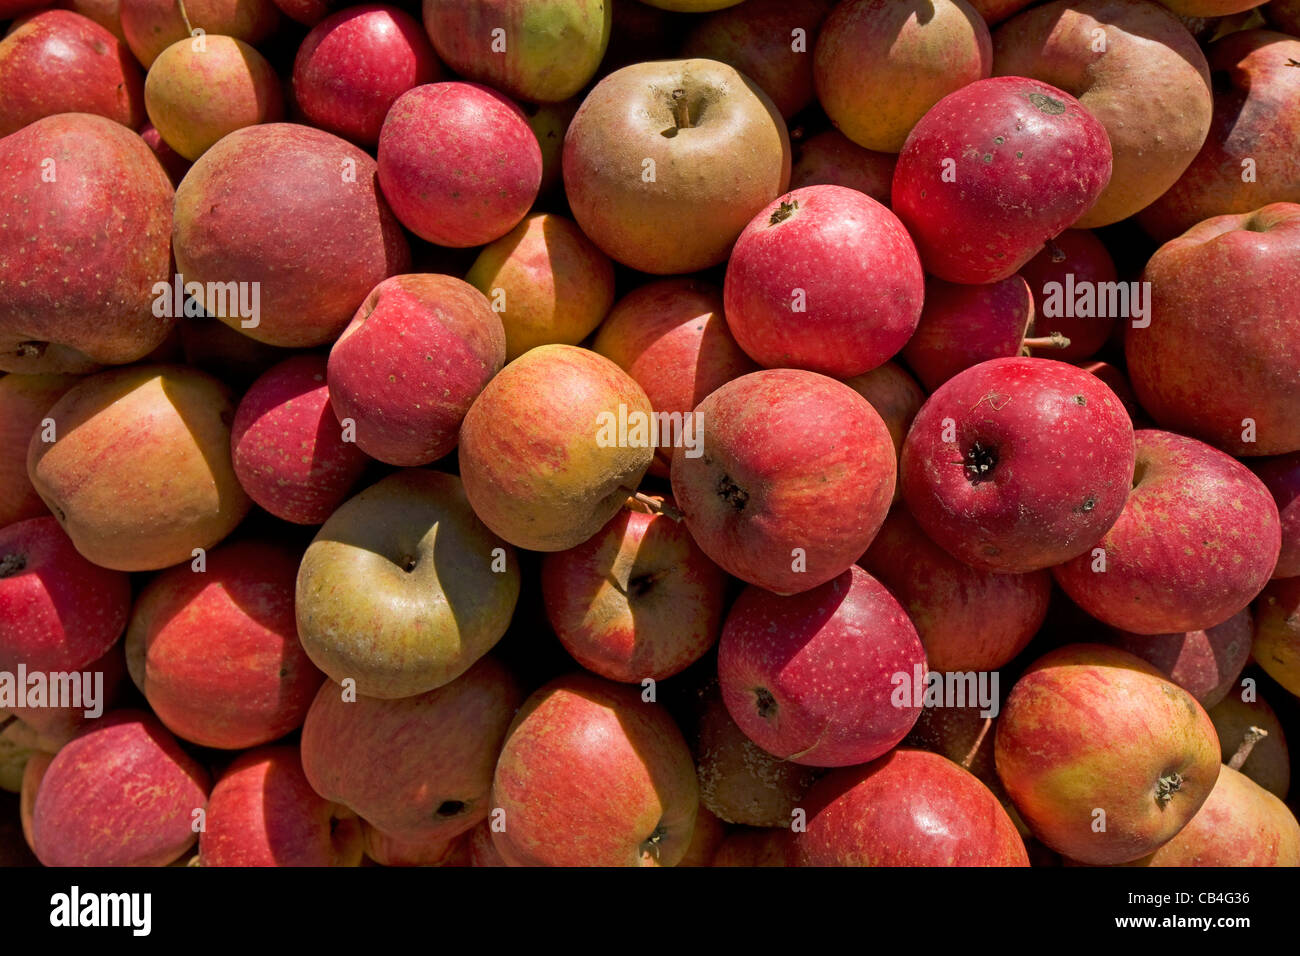 Pile of harvested fallen red apples from orchard for the production of fruit juice, Hesbaye, Belgium - Stock Image